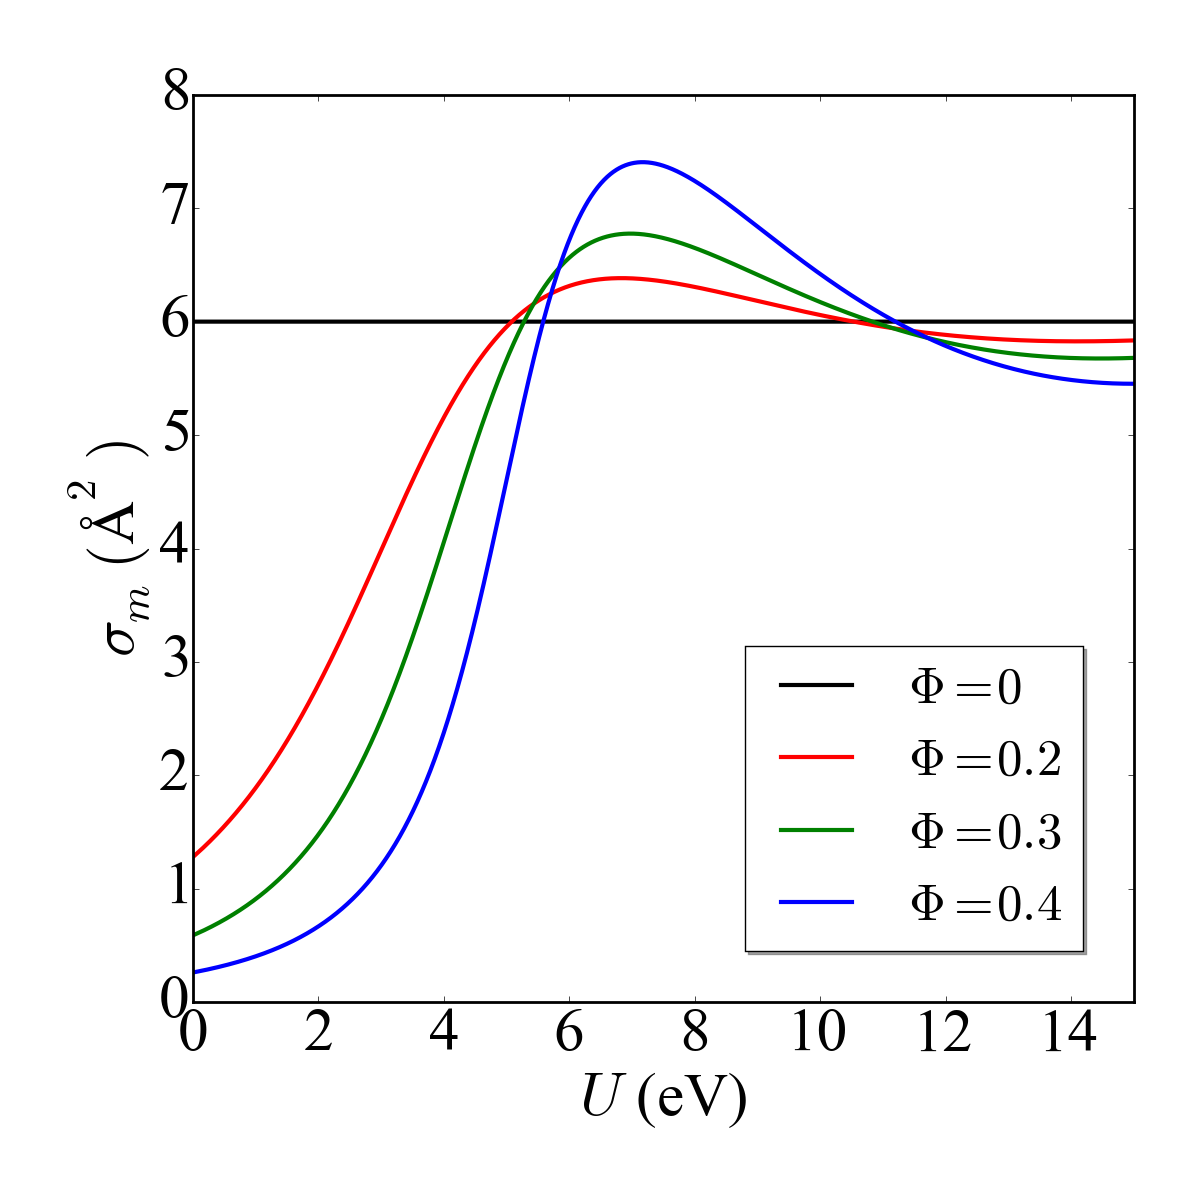 The variation of the elastic momentum-transfer cross-section including structure with energy for model (